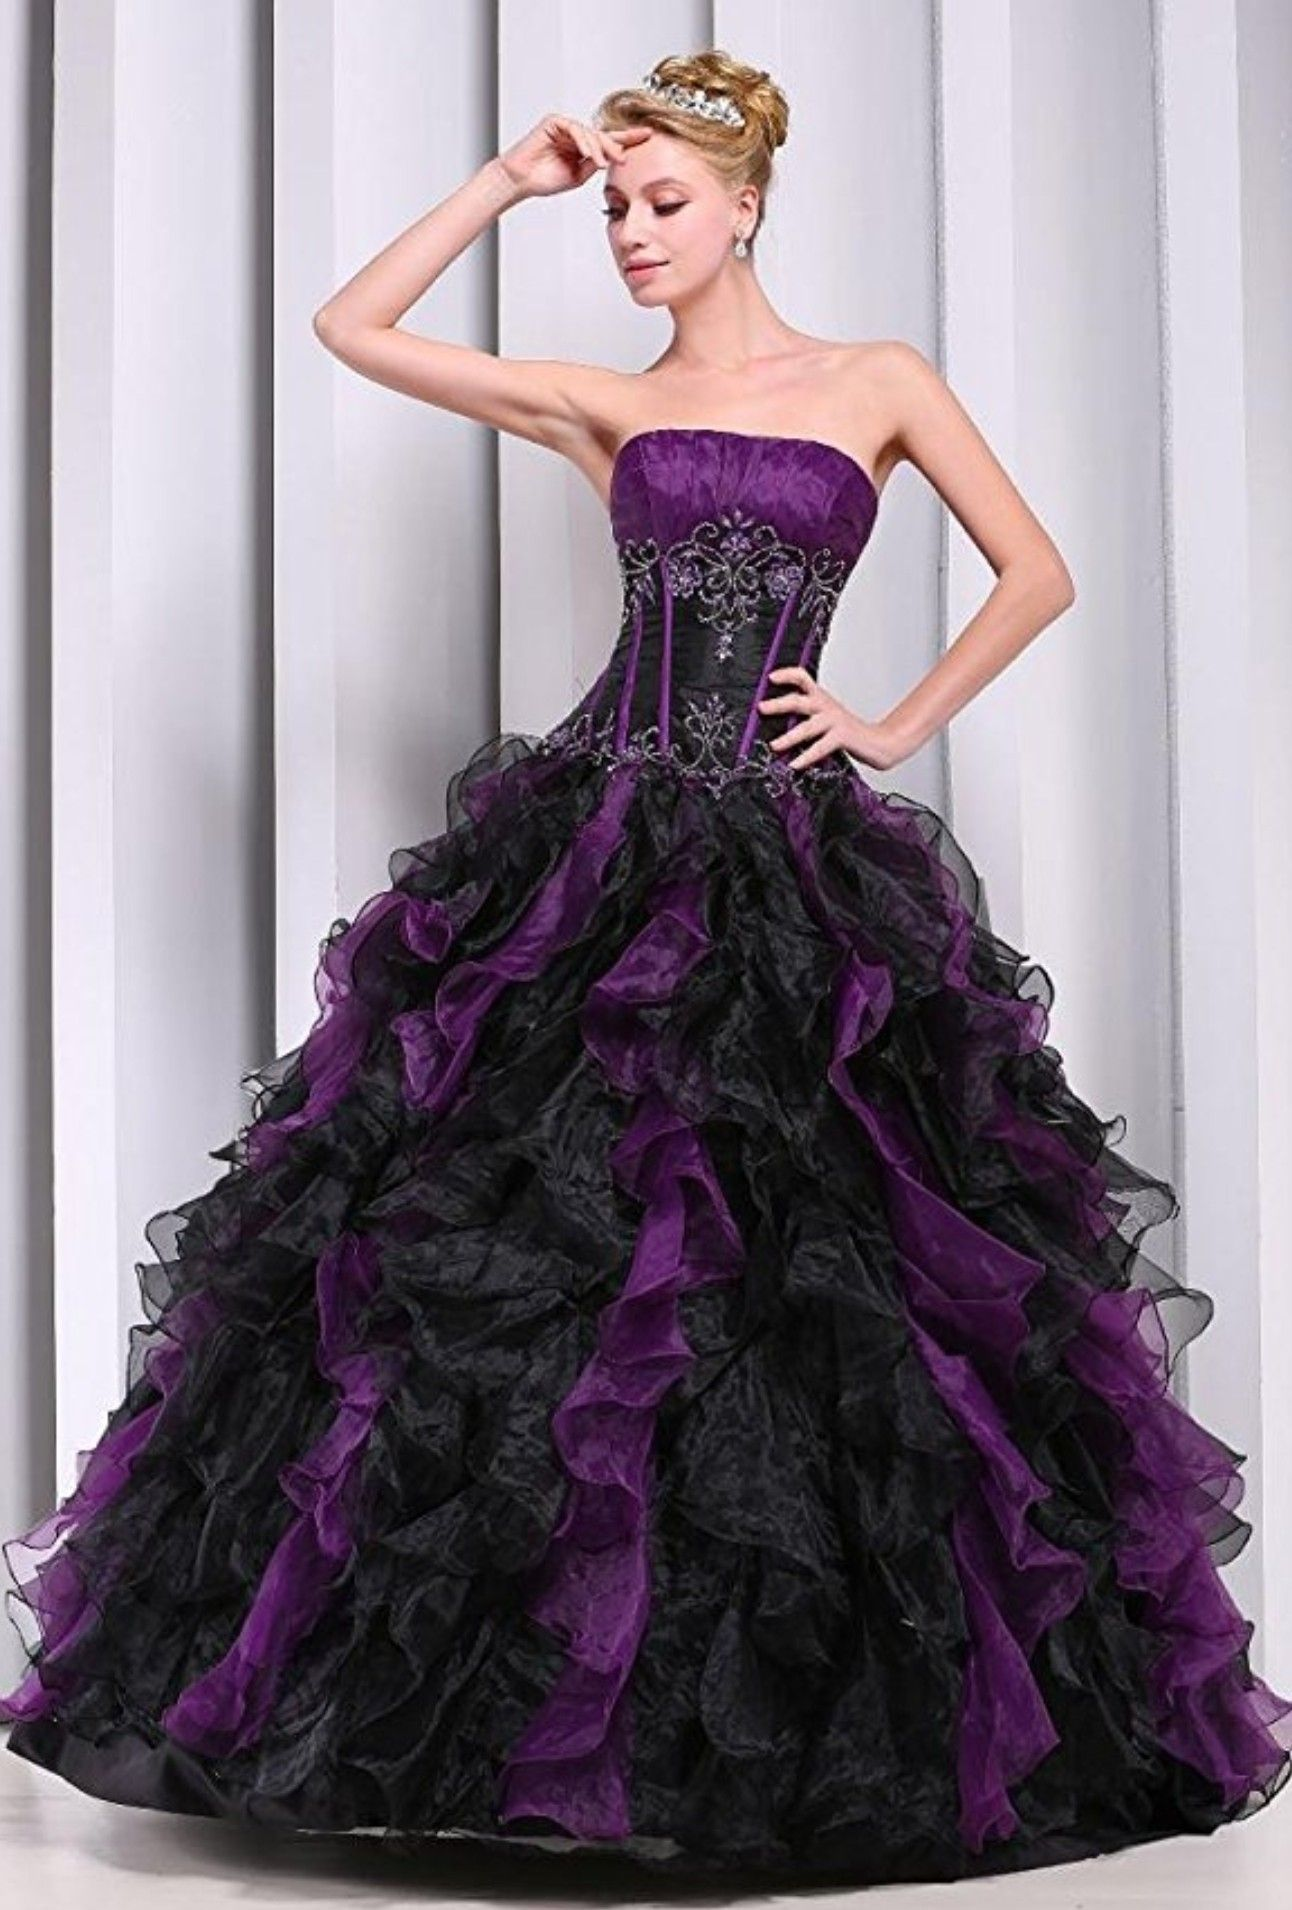 Nightmare before Christmas quince dress | Paiton Quince in 2018 ...